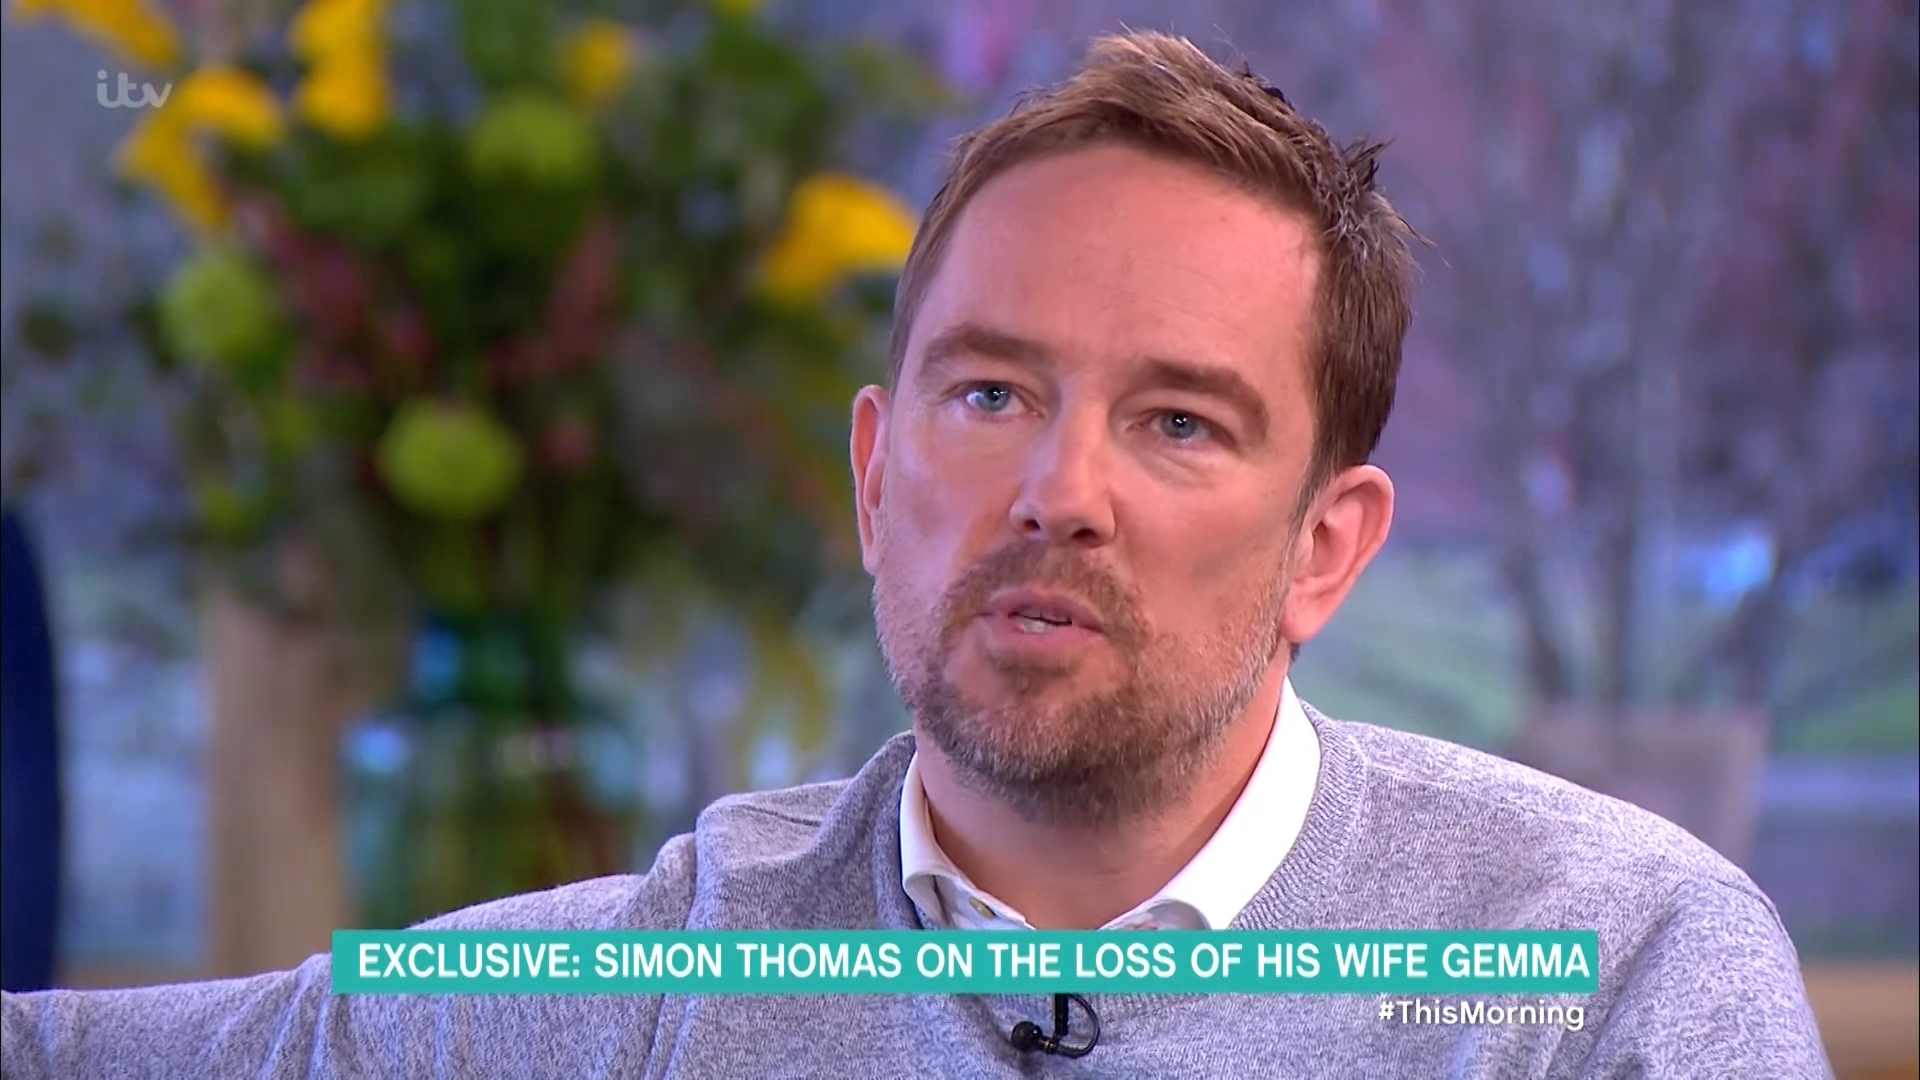 Simon Thomas recalls death of wife Gemma on 'This Morning' in heartfelt interview